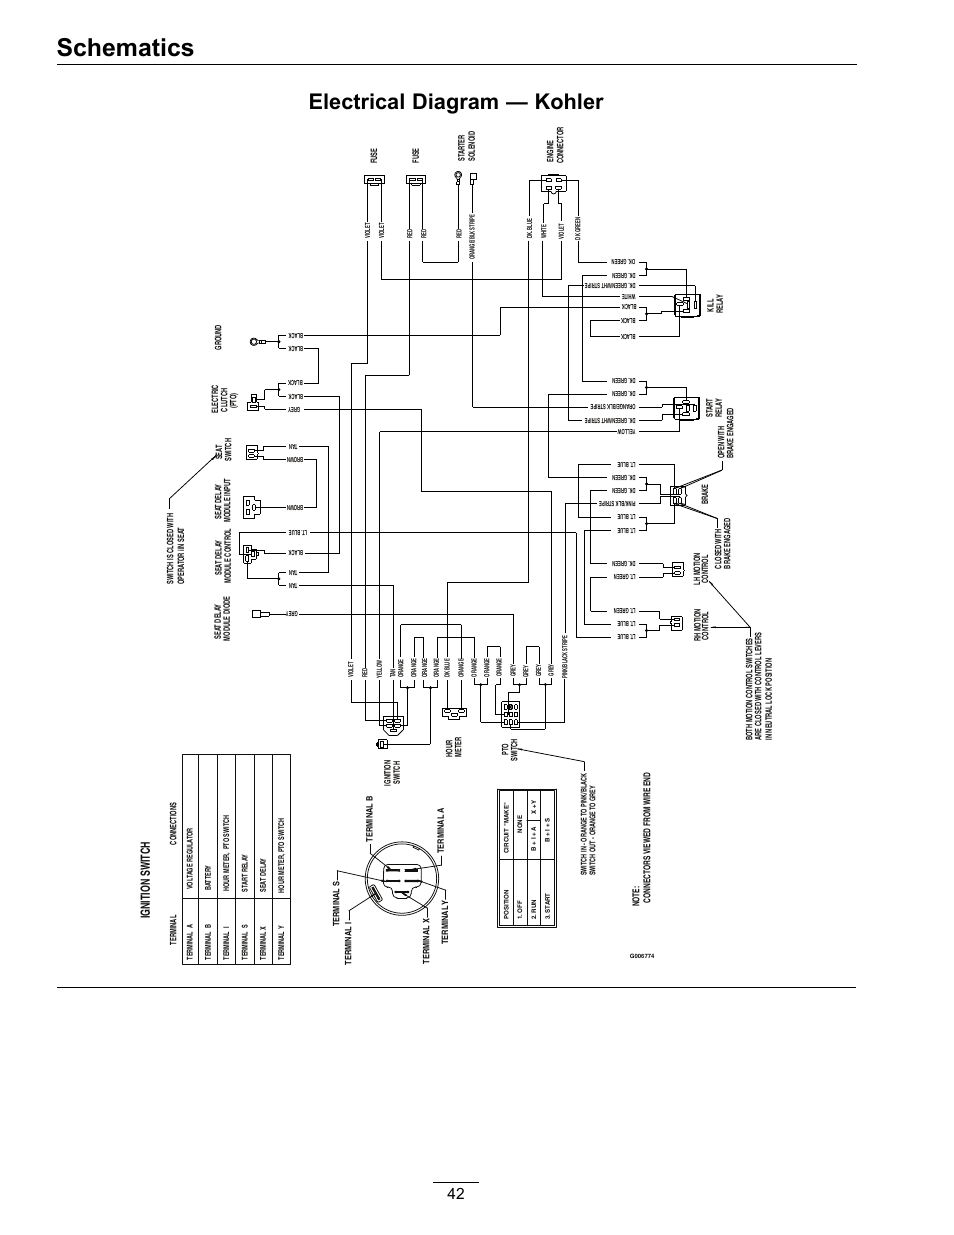 exmark lazer z hp 565 page42 schematics, electrical diagram kohler, ignition switch exmark exmark wiring diagram at fashall.co